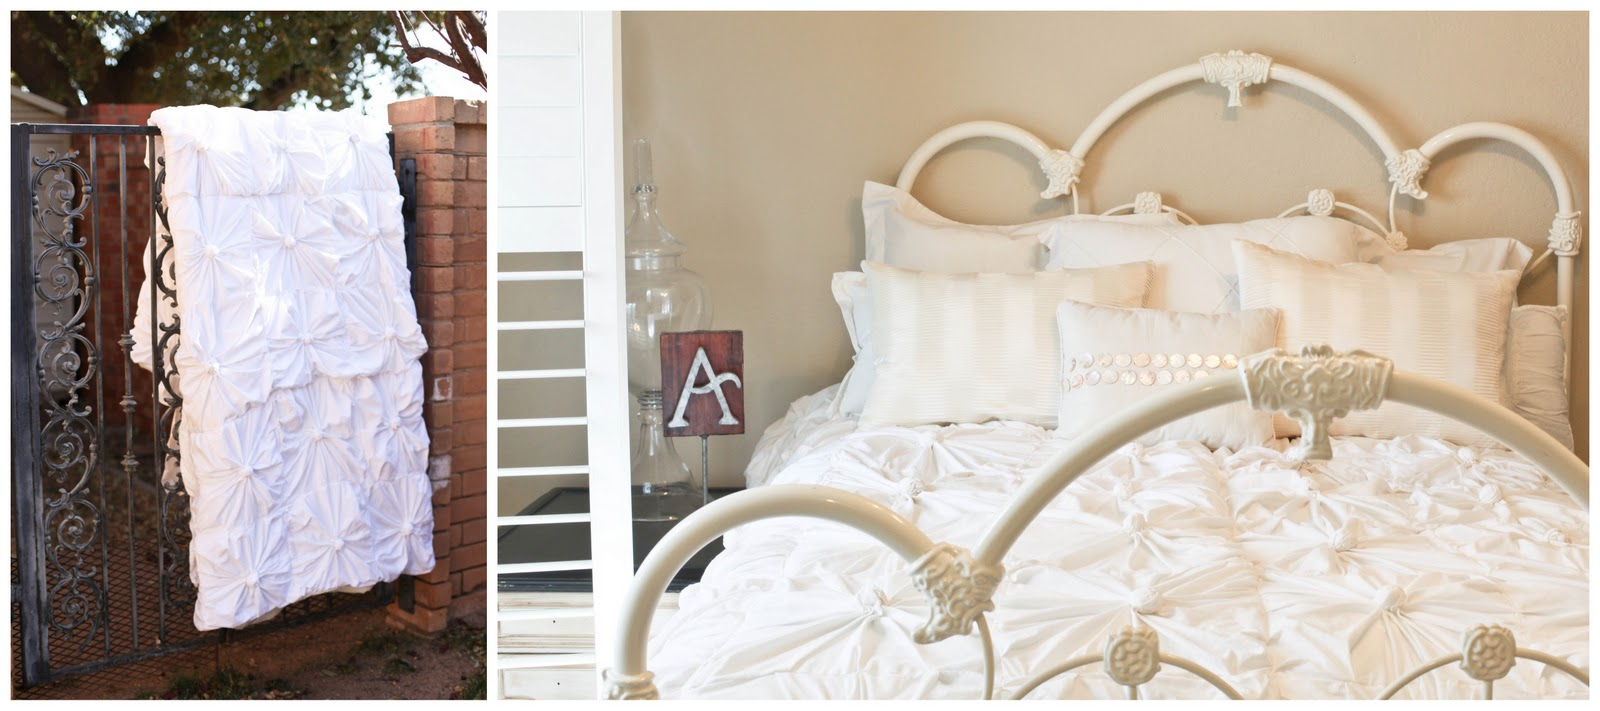 Anthropologie bedding - Anthropologie Inspired Knotted Bedding Part 2 Putting It All Together